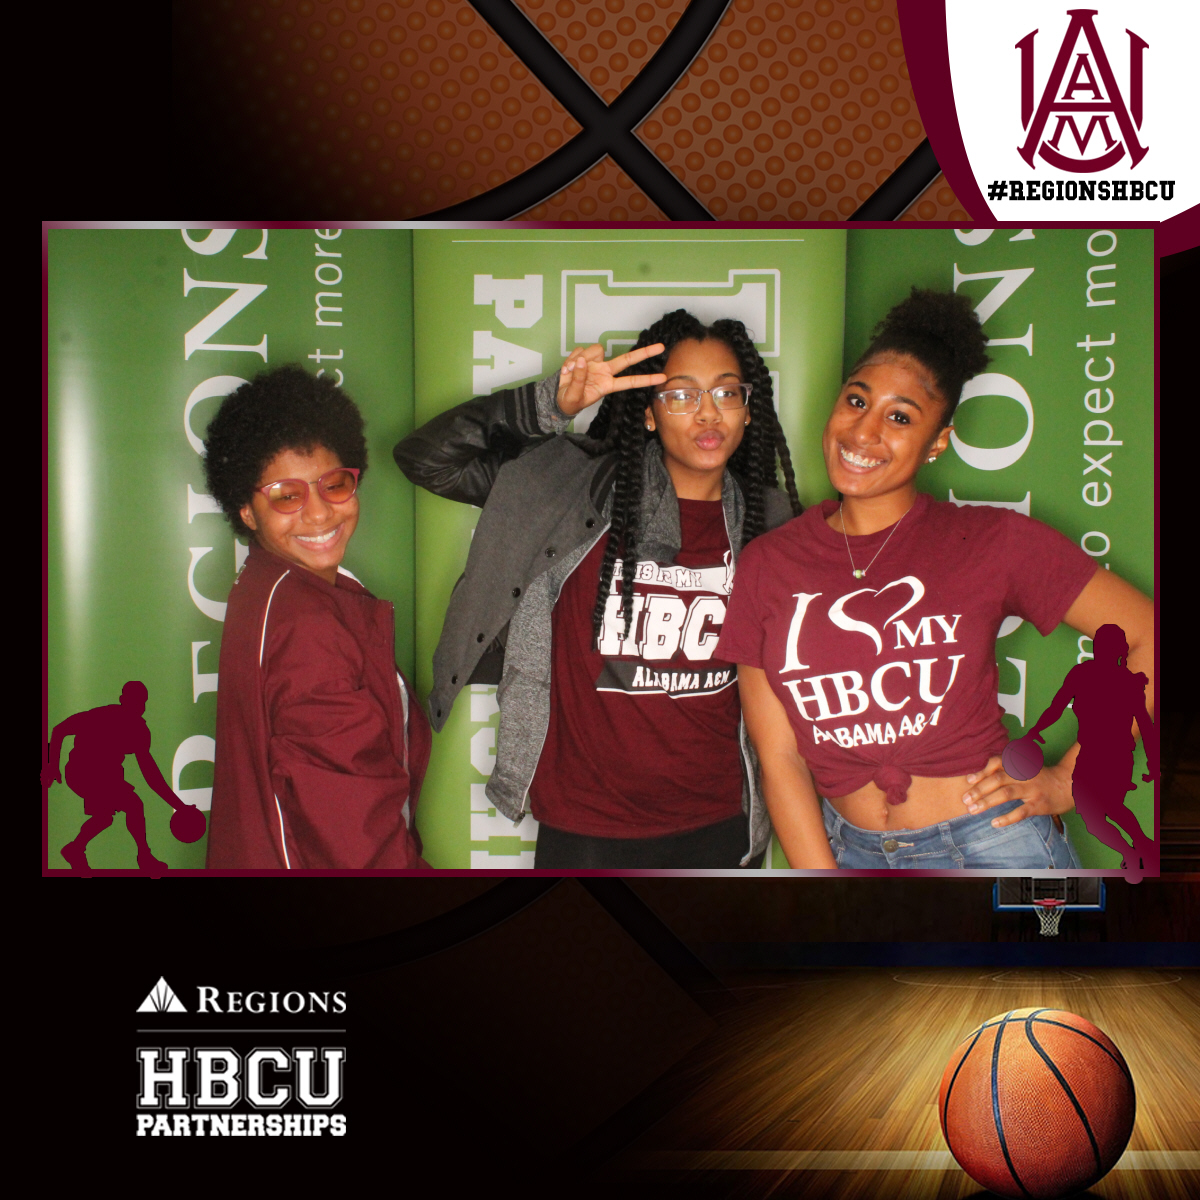 Regions HBCU - AAMU BBall (Single)